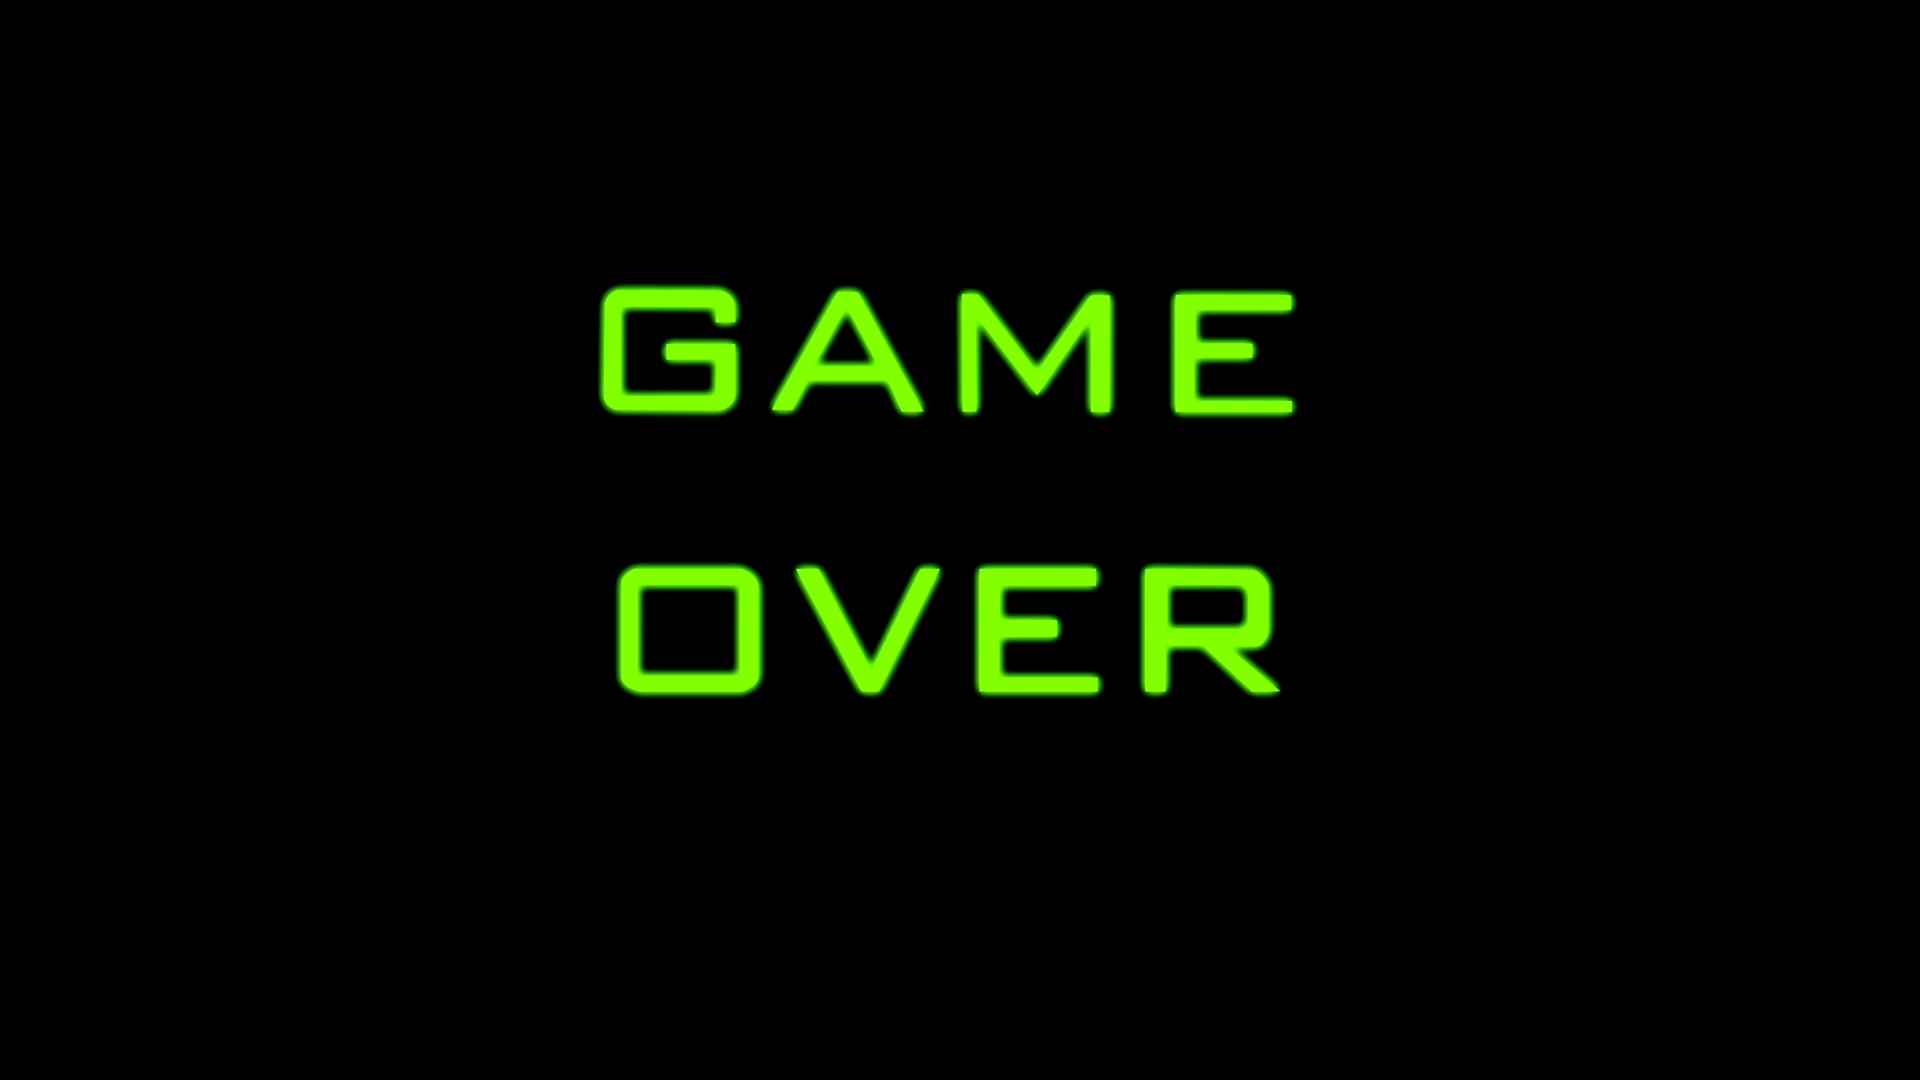 game over Arcade for the kids of all ages sports bar for the adults too 50 games for the kidos to choose from, donkey kong, mario bros, ms pacman and galaga and newer ones too.